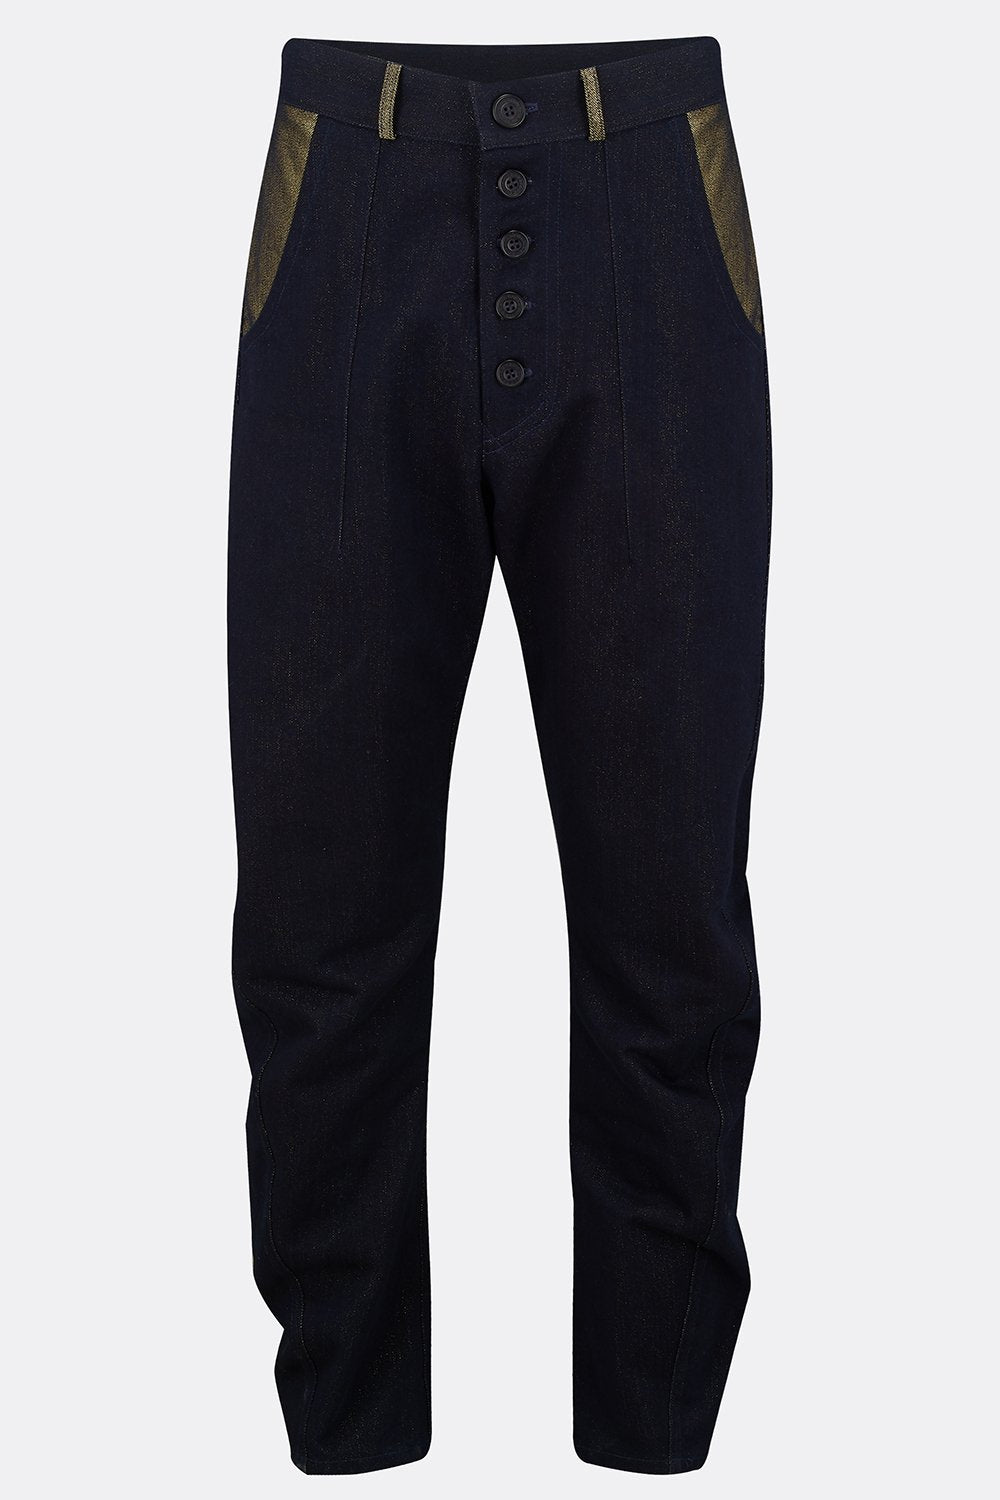 APACHE TROUSERS IN DENIM W/ GOLD LUREX-menswear-A Child Of The Jago